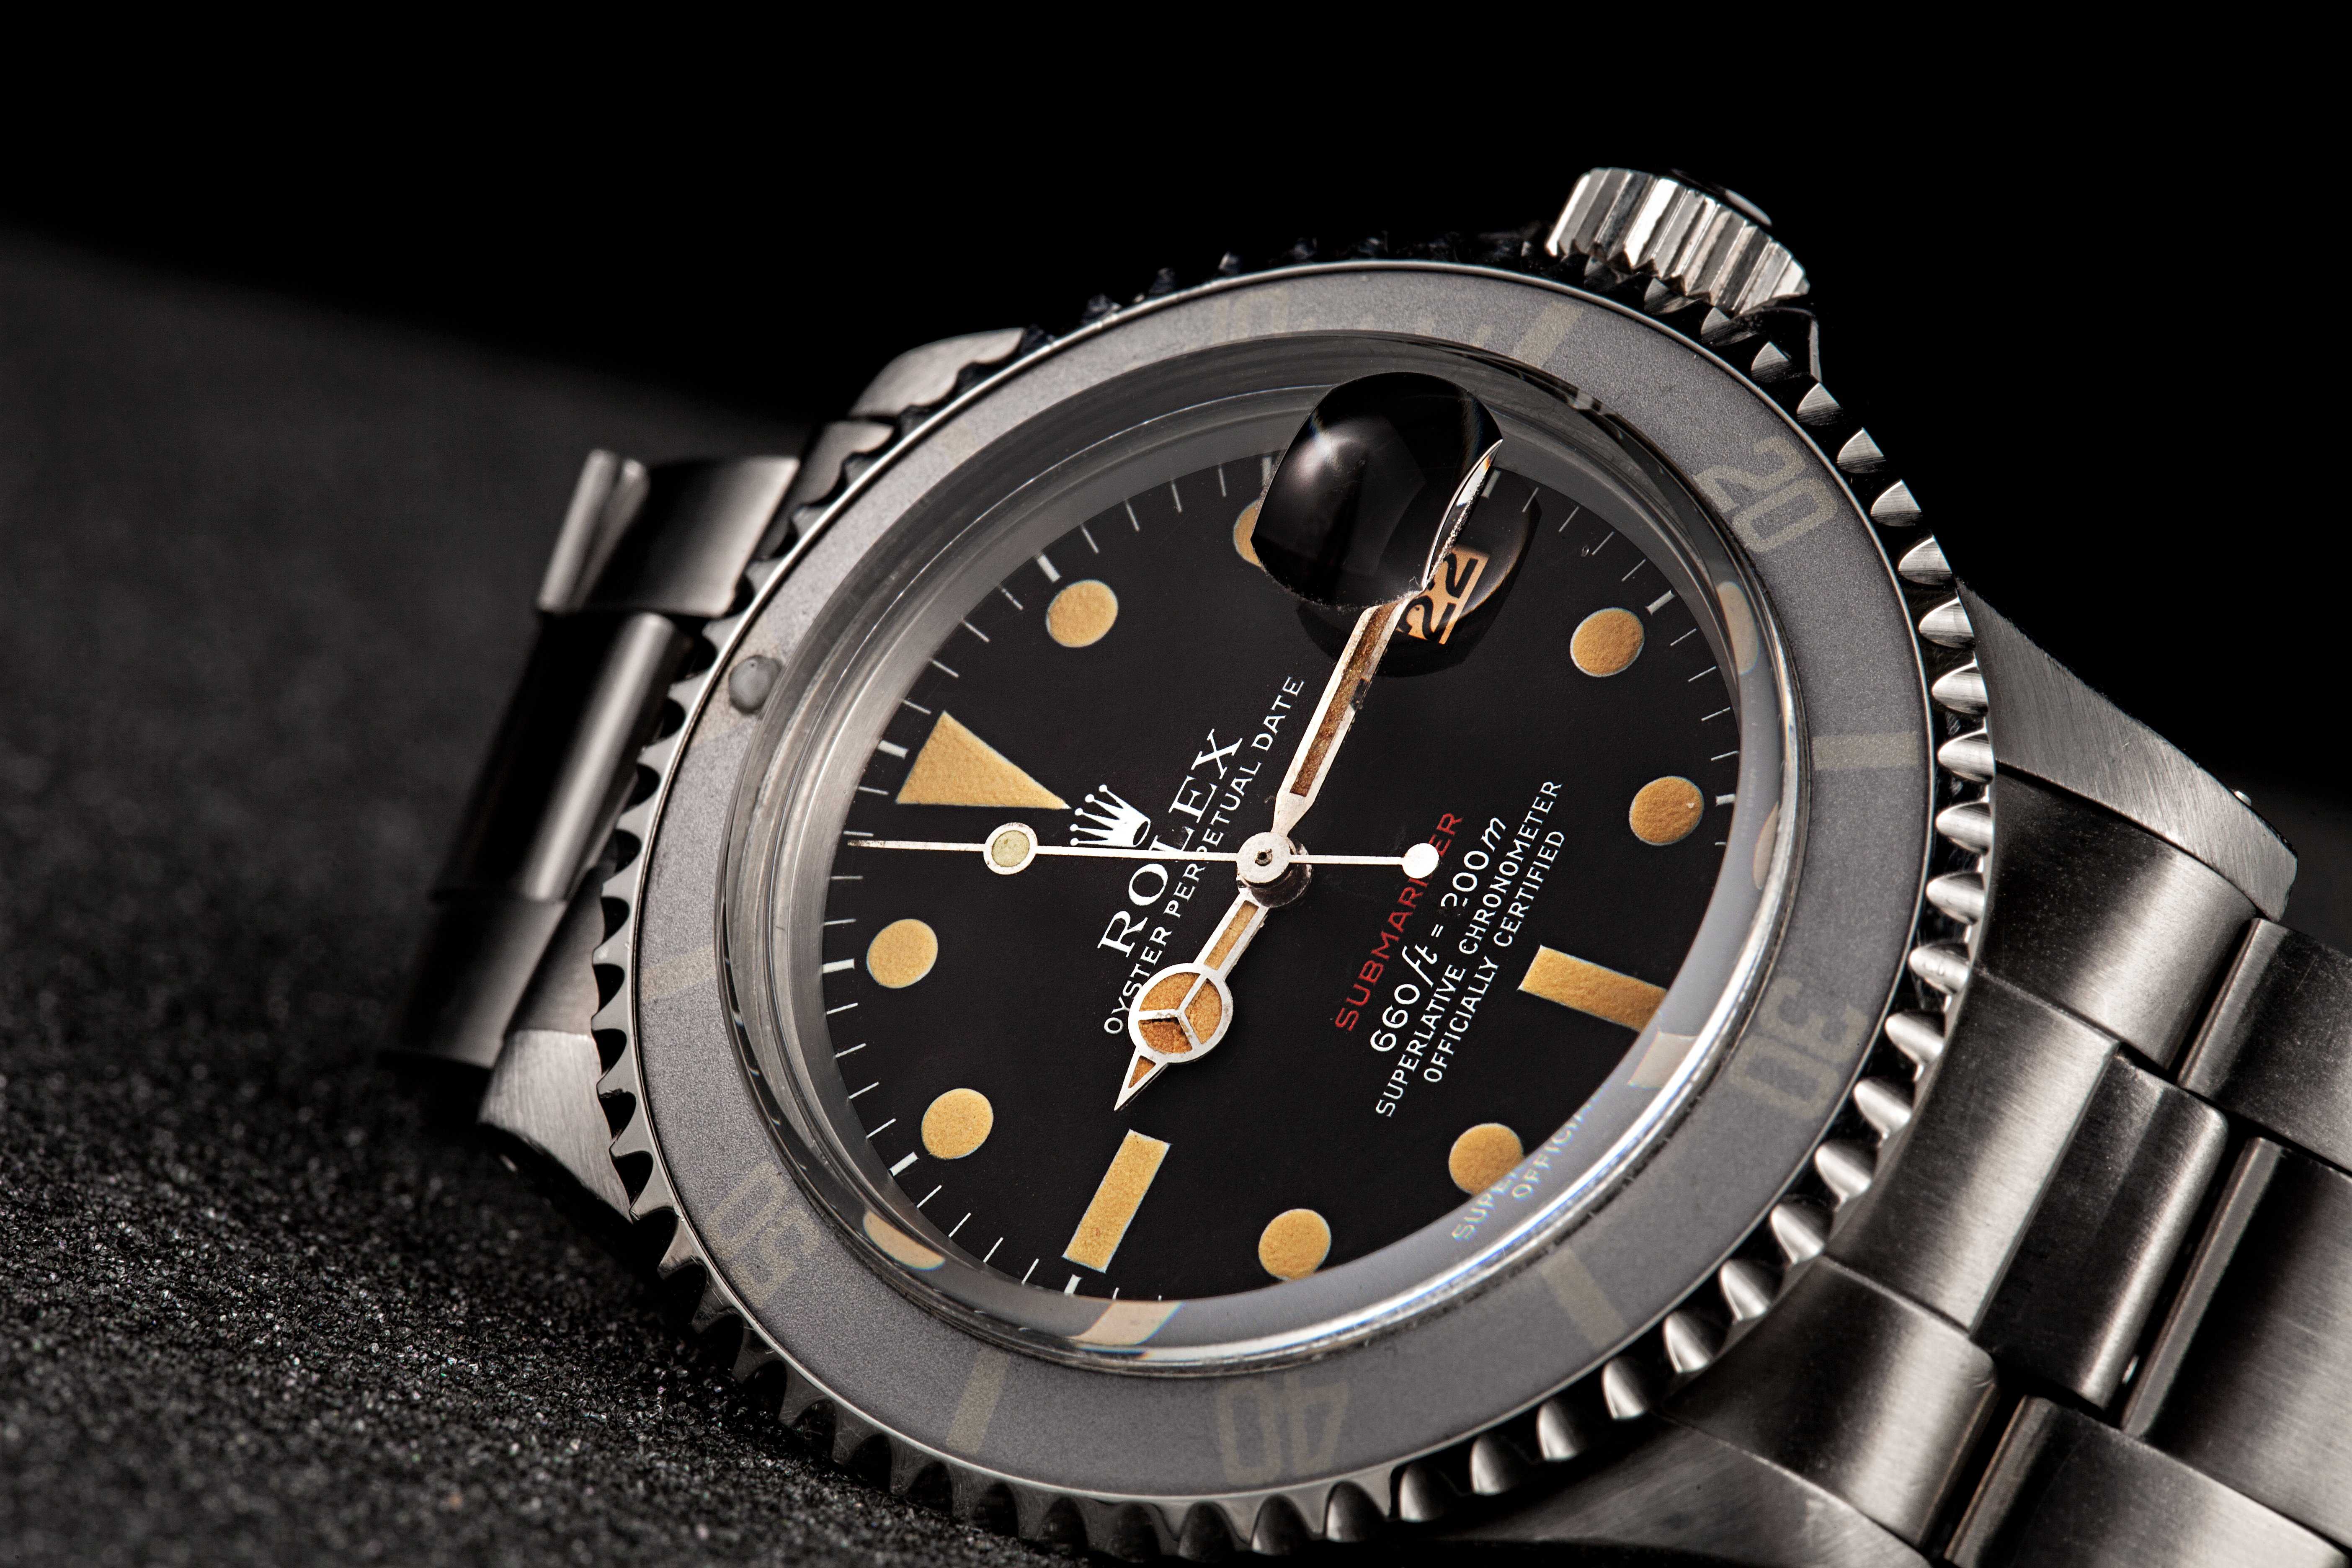 First Rolex Watch Ever Made vintage submariner red sub